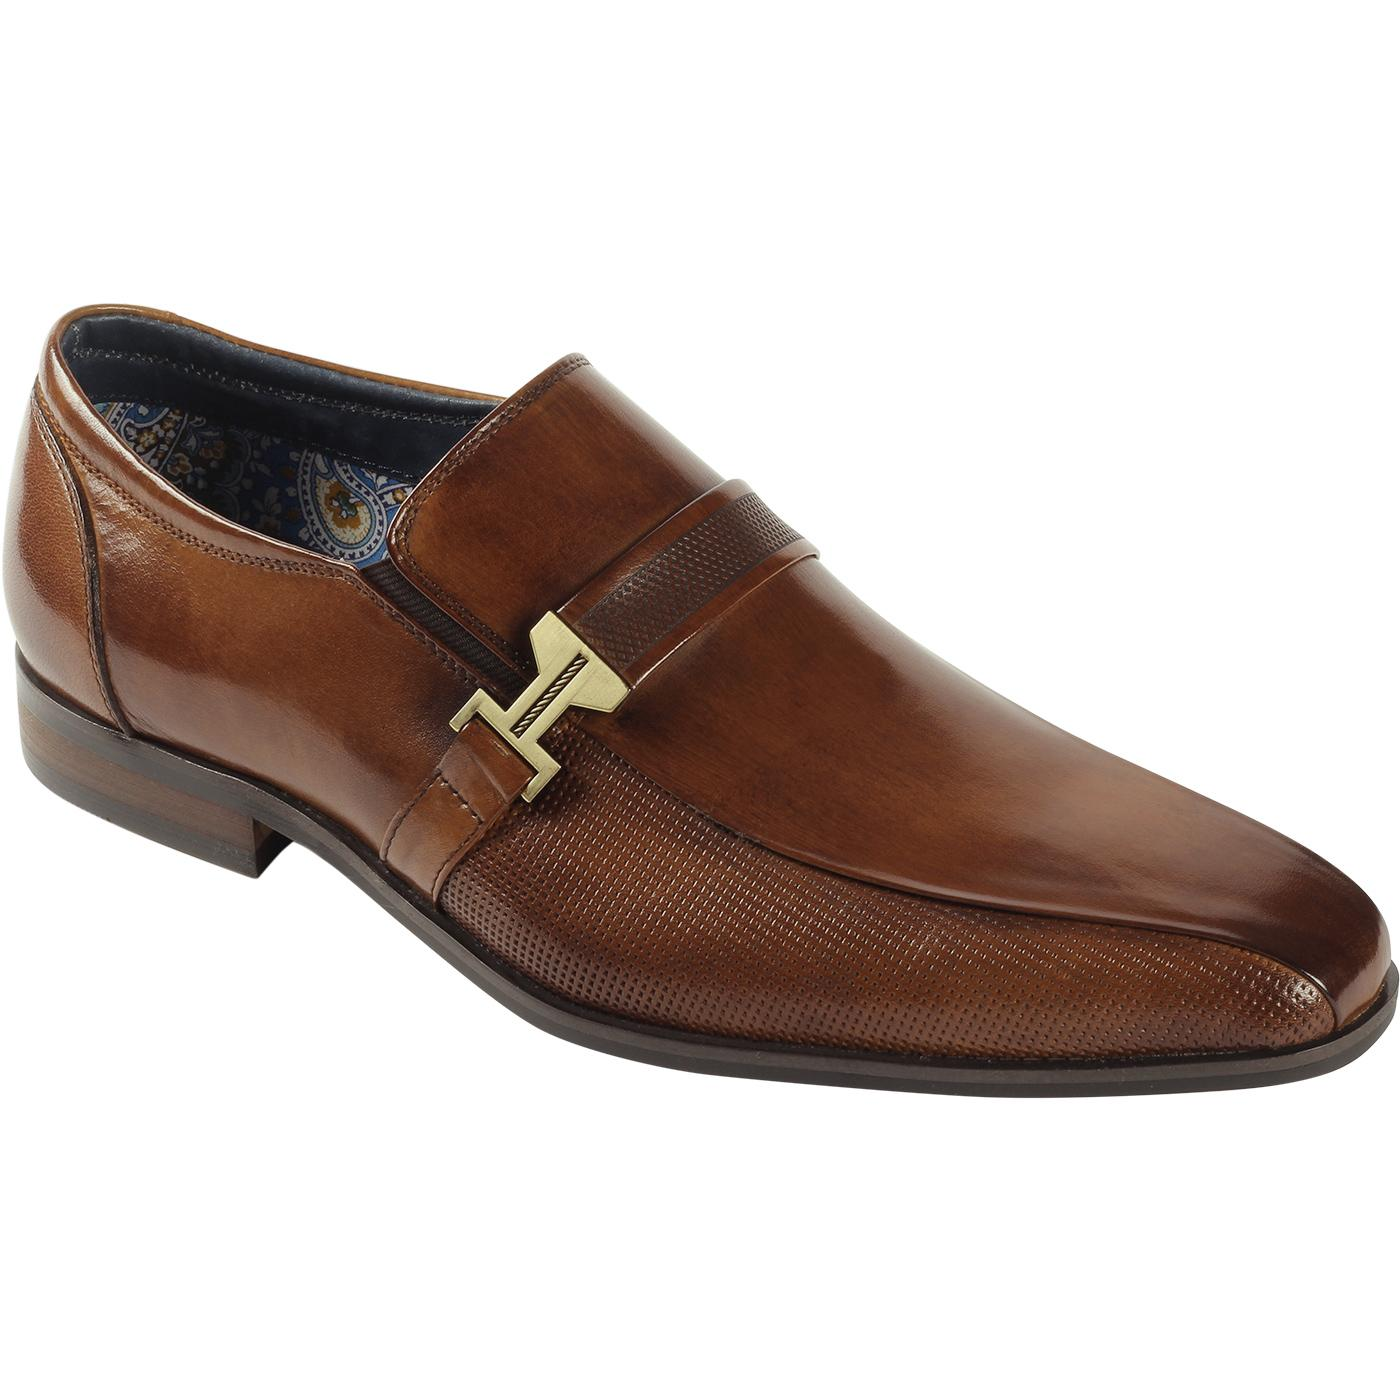 Elon PAOLO VANDINI Mod Square Toe Loafers (Tan)